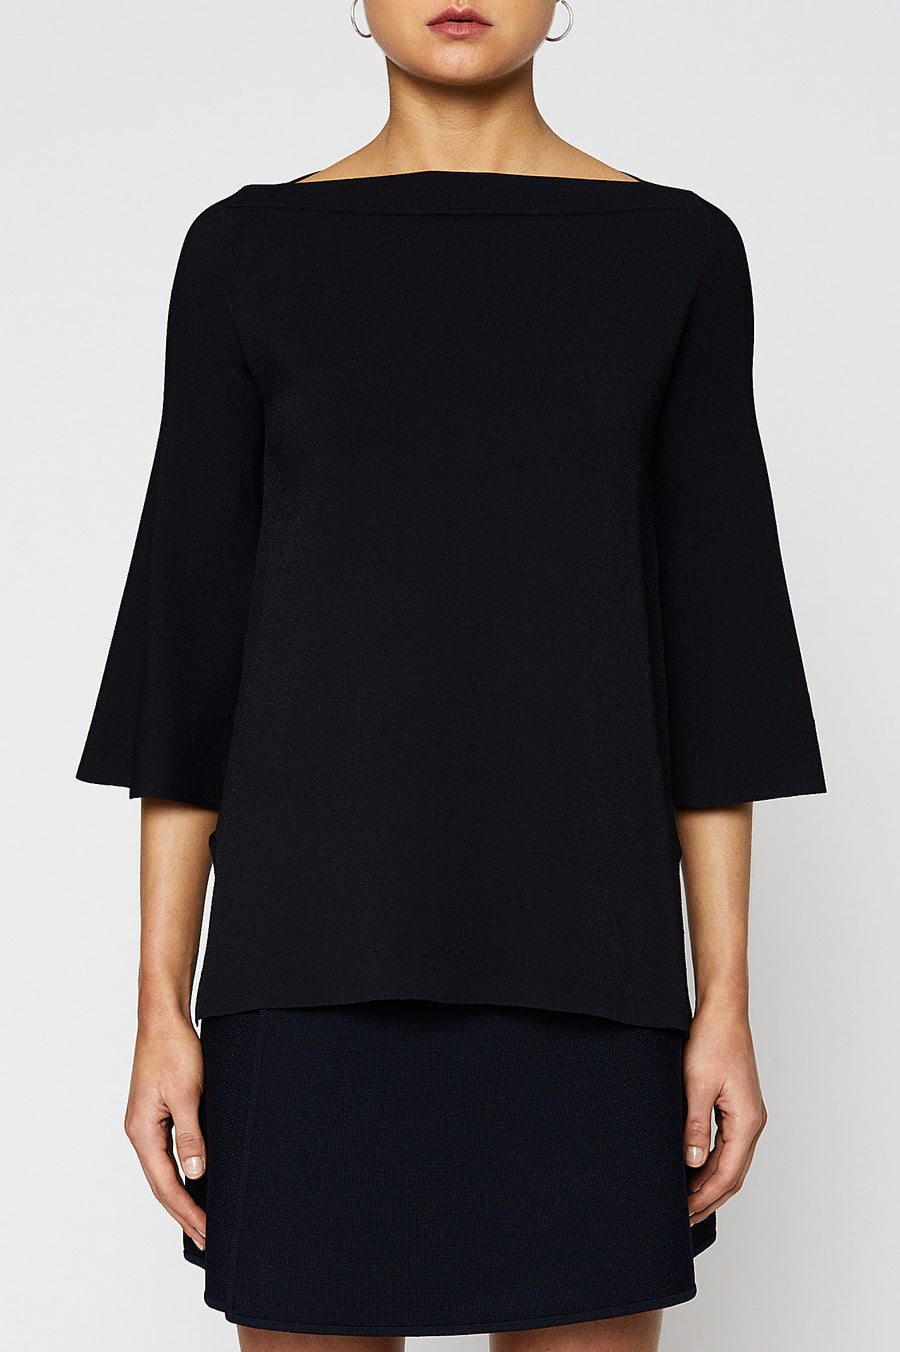 Micro Crepe Boat Neck Sweater, mid-length peplum sleeves, high neckline, Color Navy